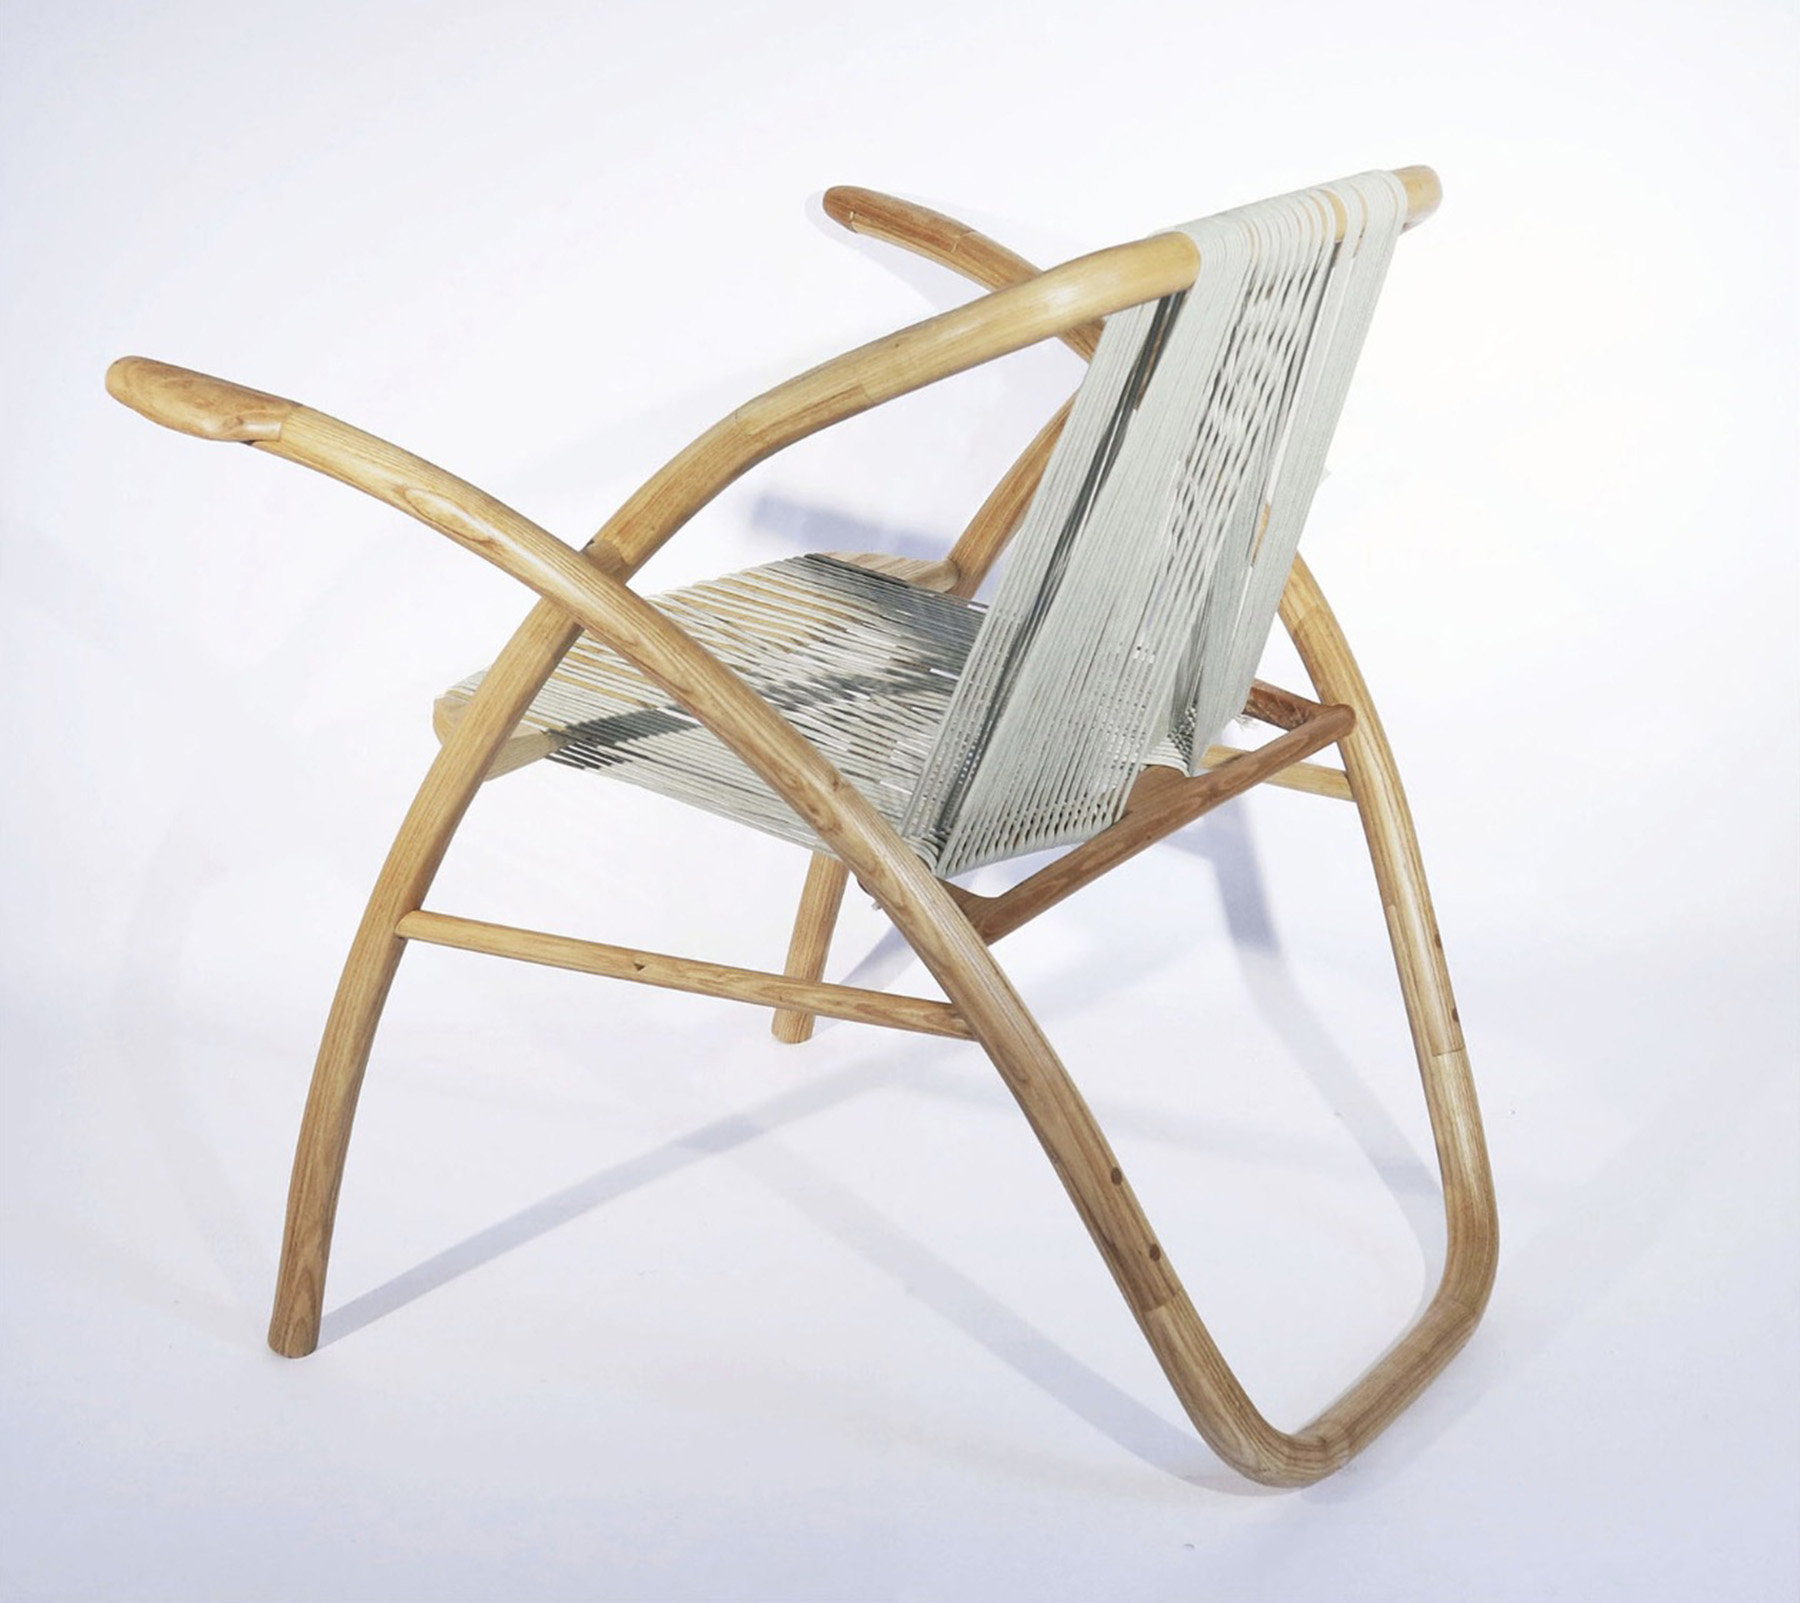 Continuity Chair